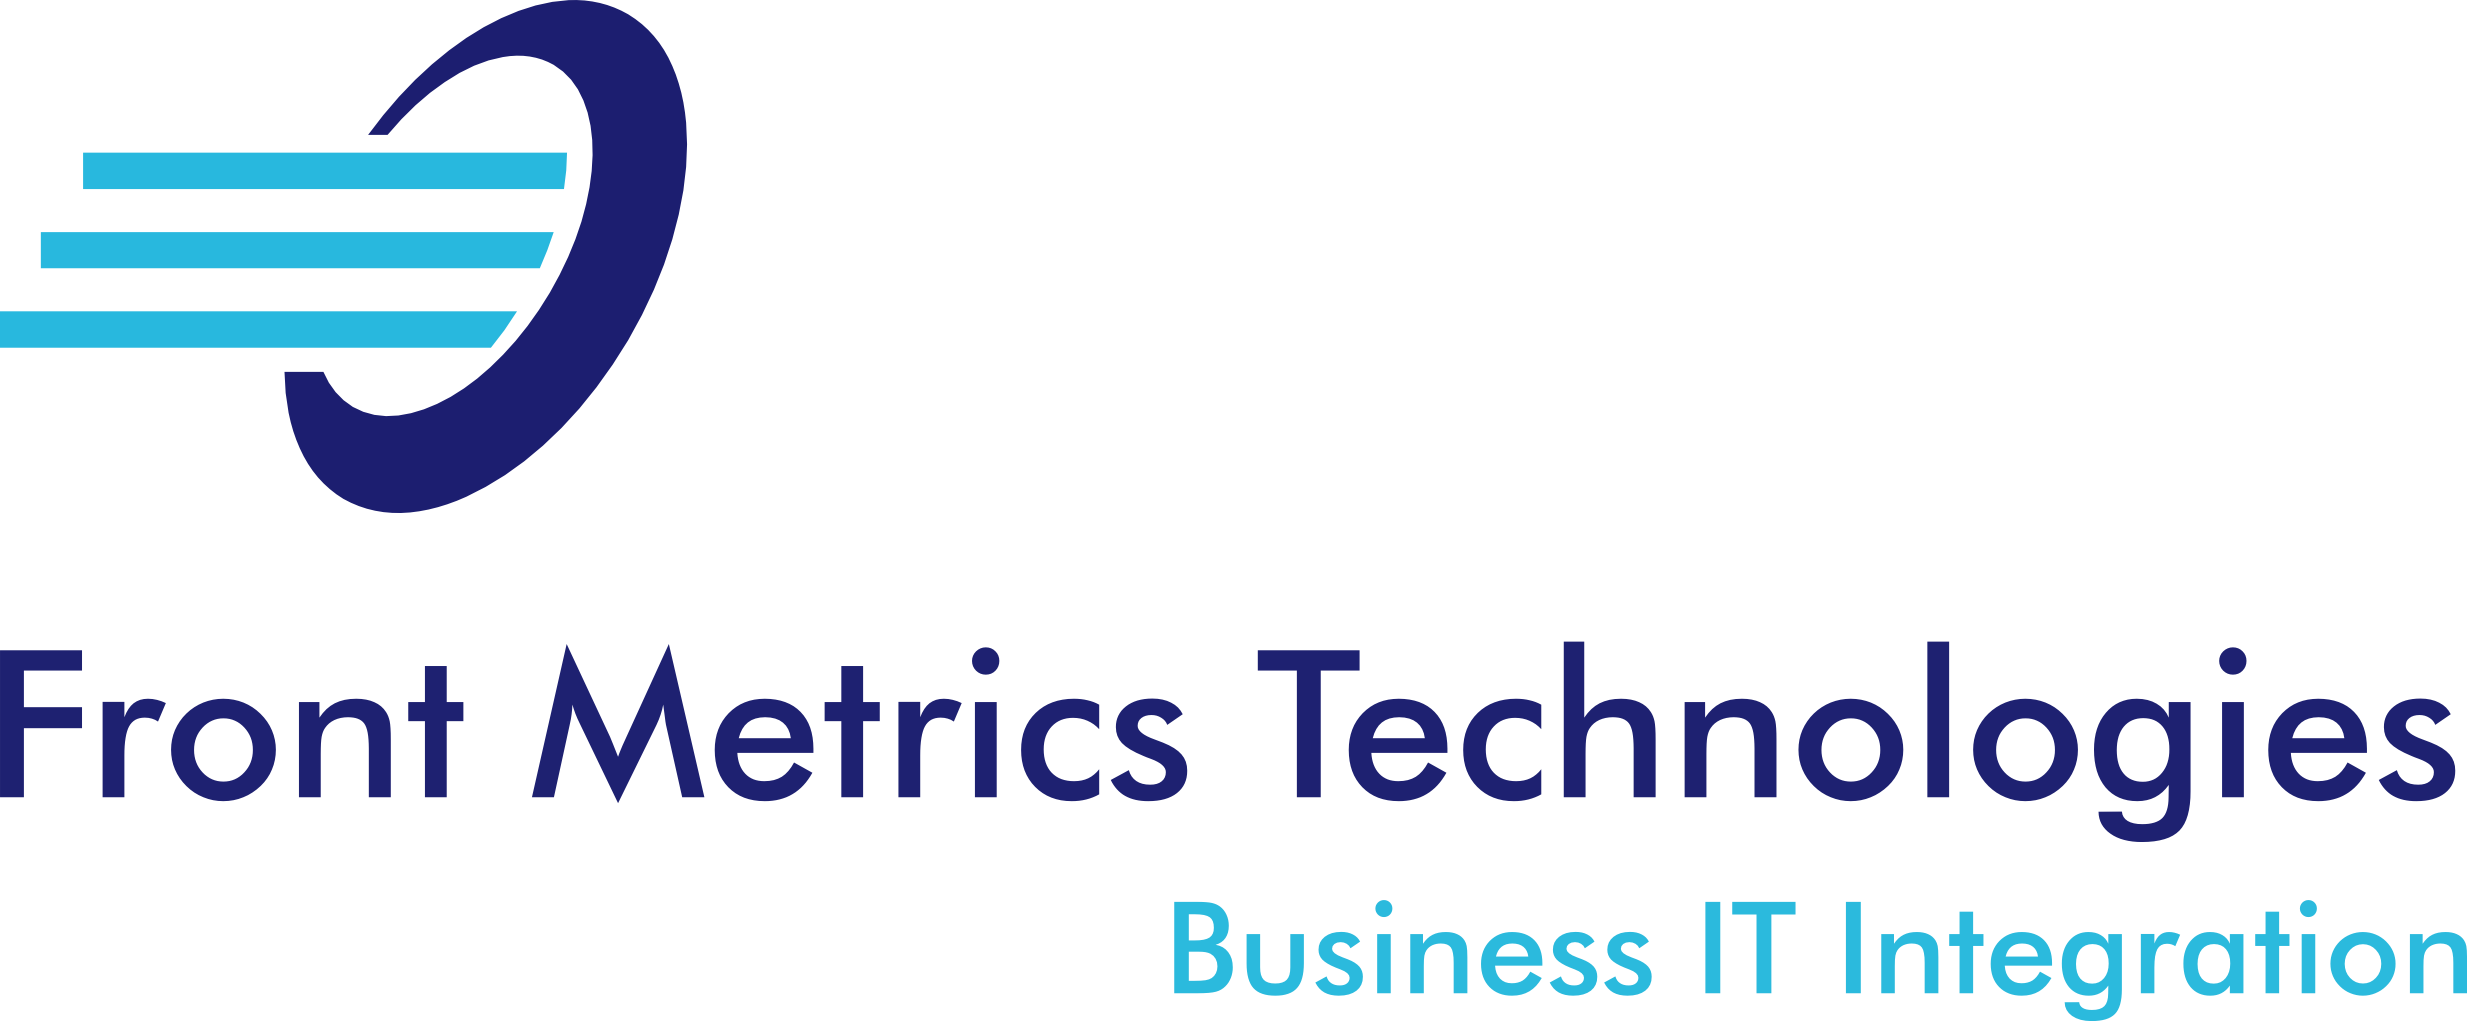 Front Metrics Technologies Pvt Ltd